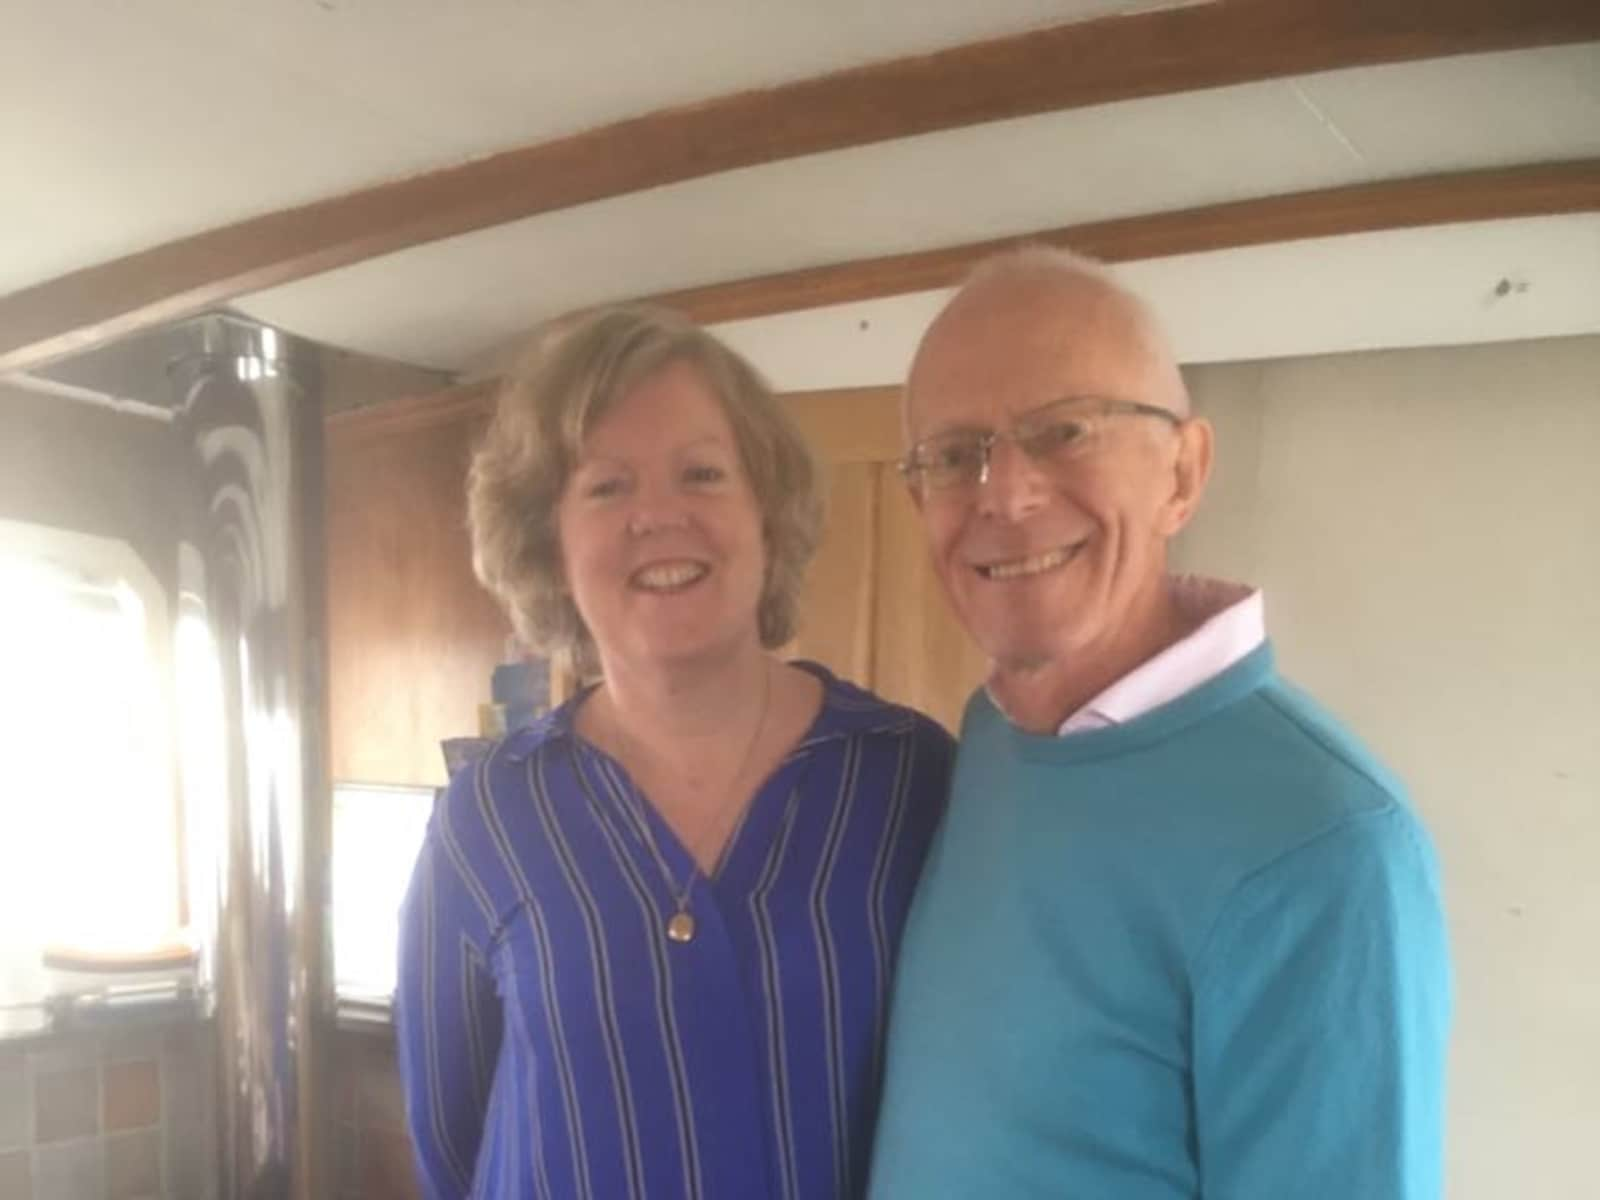 Rachel & Terry from Reading, United Kingdom